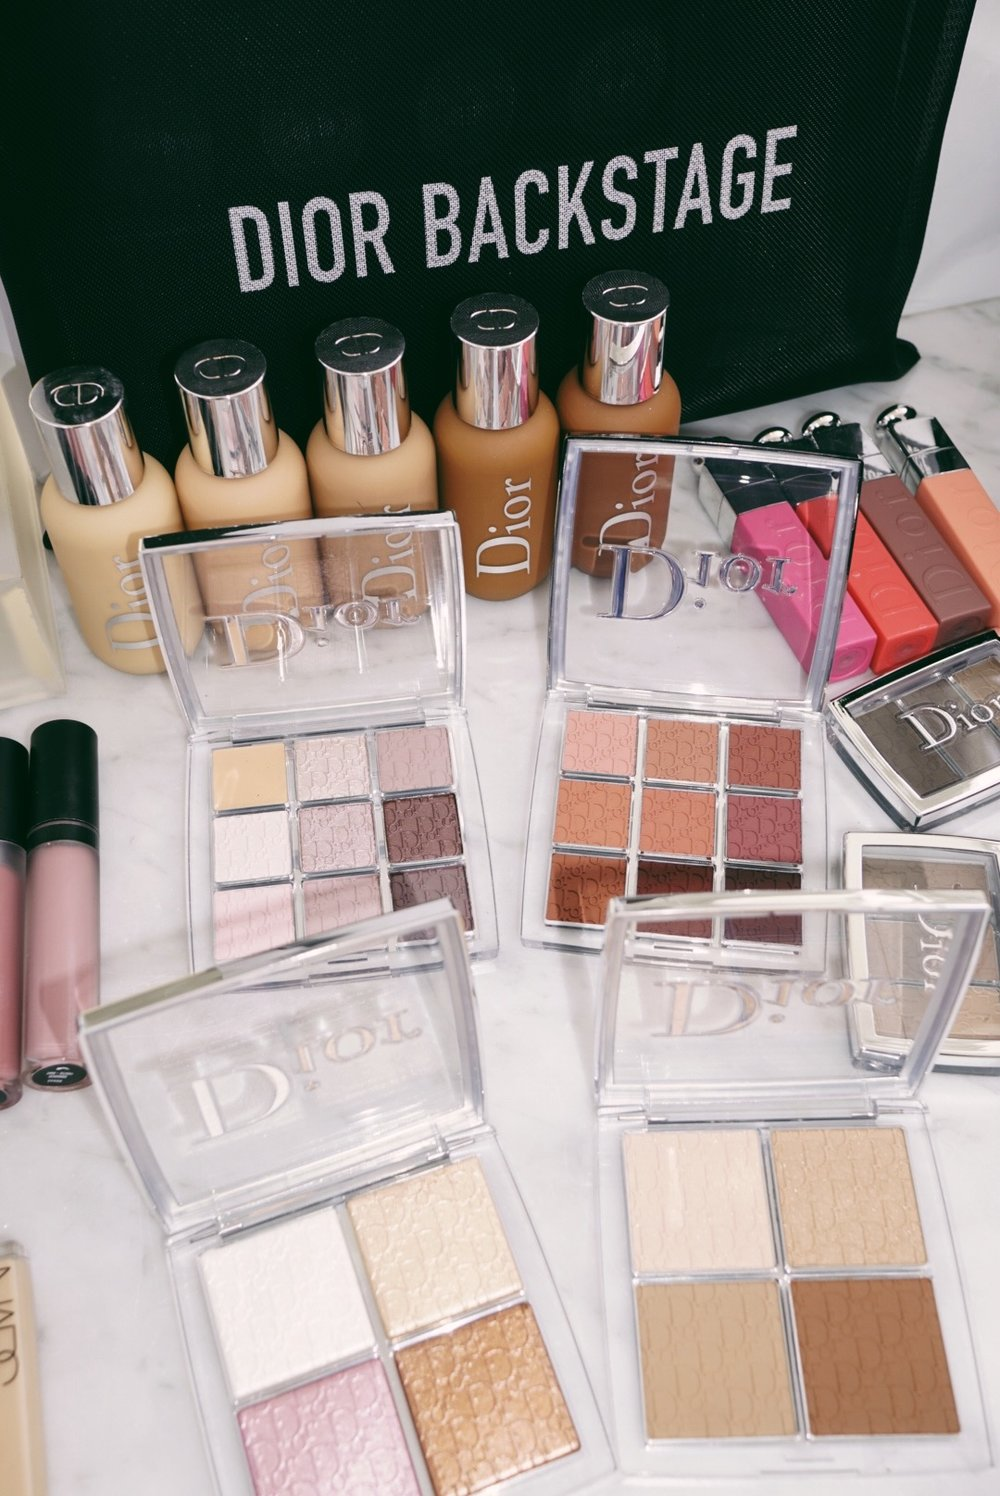 DIOR BACKSTAGE Palettes - ShopLearn more